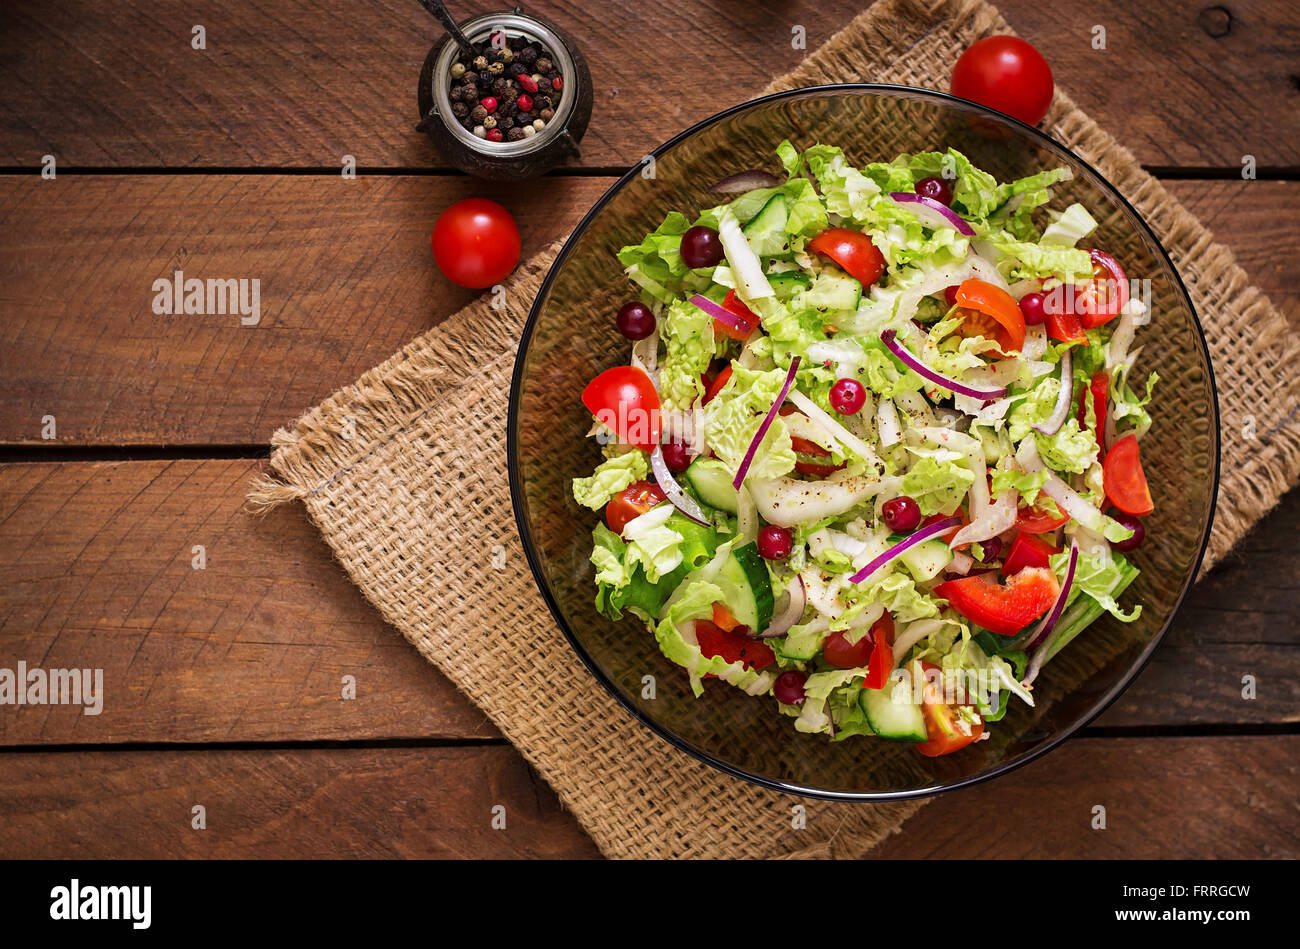 Dietary salad with fresh vegetables (tomato, cucumber, Chinese cabbage, red onion and cranberries). Top view - Stock Image